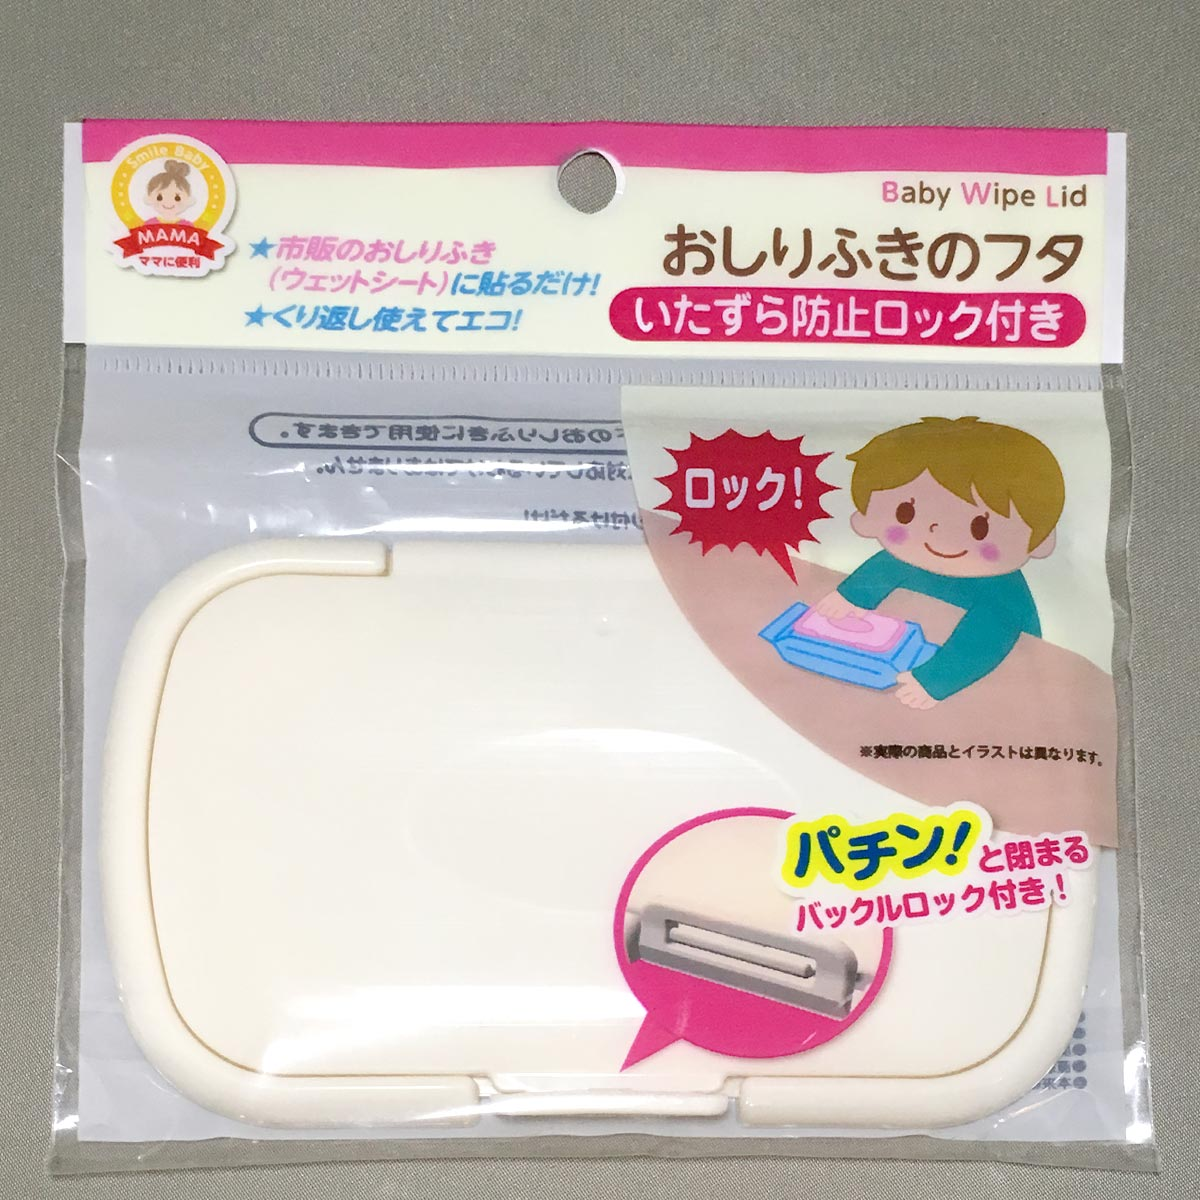 Reusable Baby Wipes Lid - front packaging